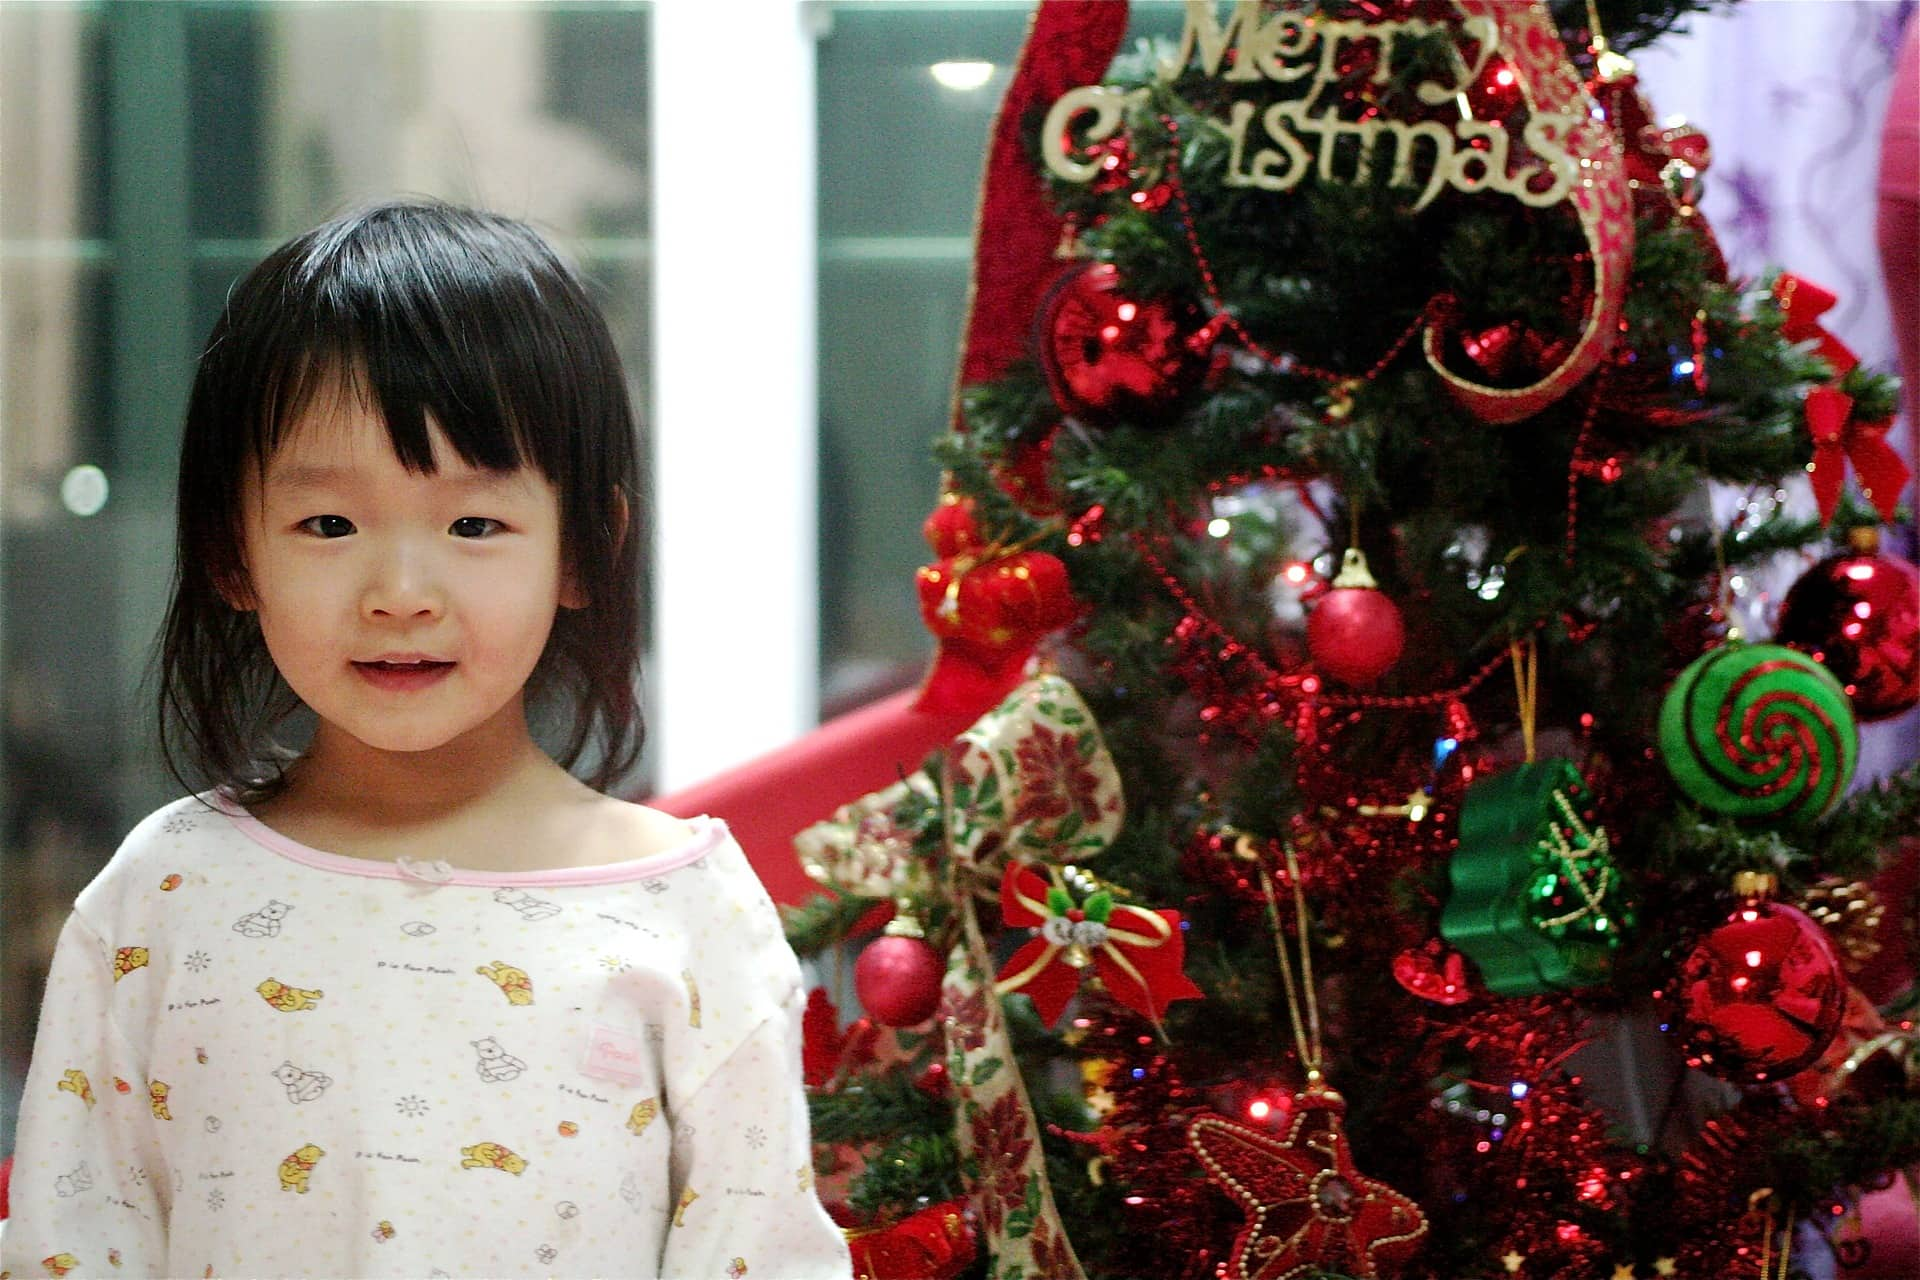 Christmas Traditions for Children: Decorate the Christmas Tree